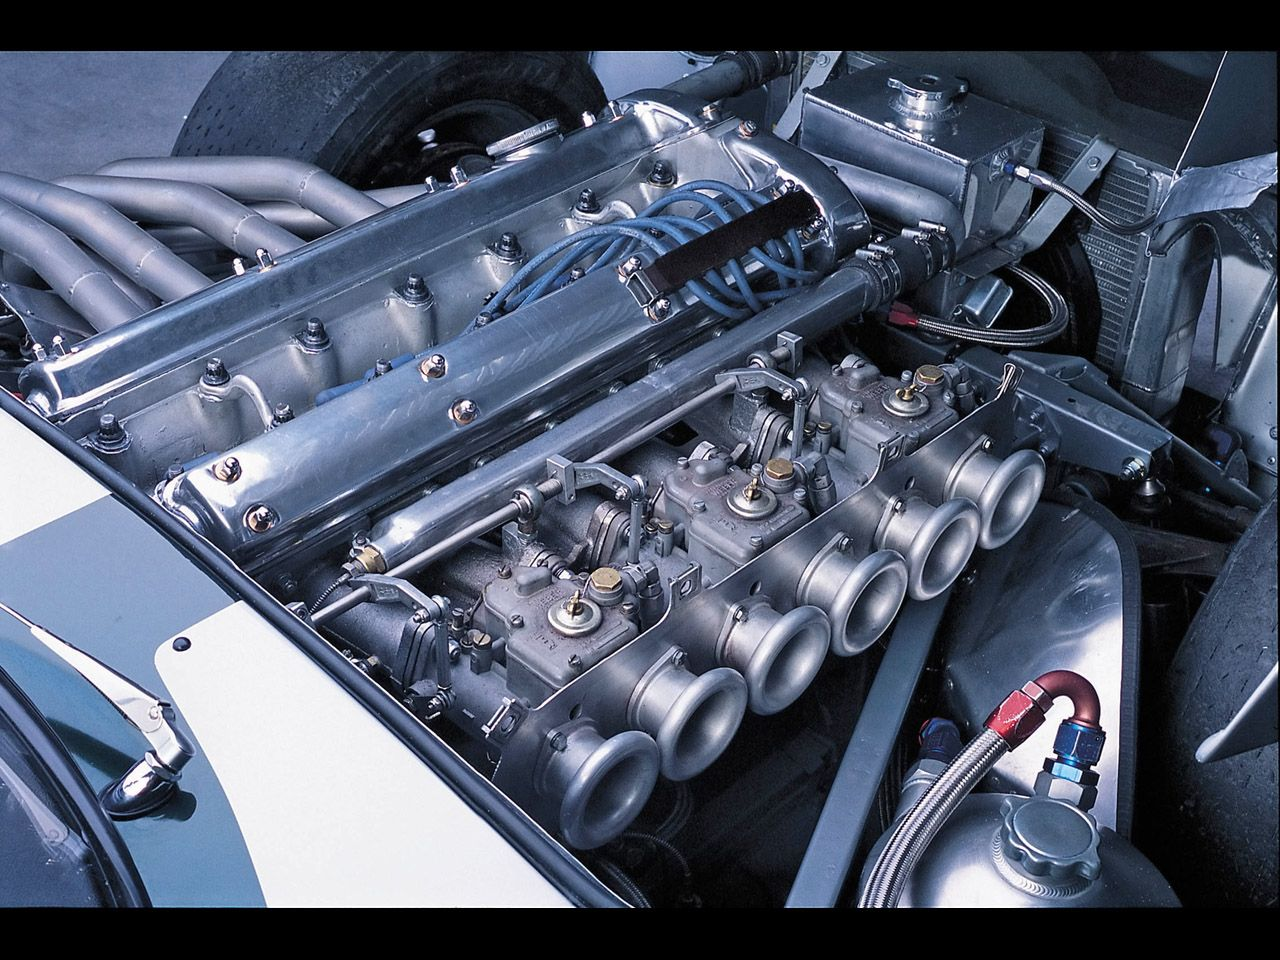 Jaguar E Type 1962 Engine Compartment Look At Beautiful Row Of